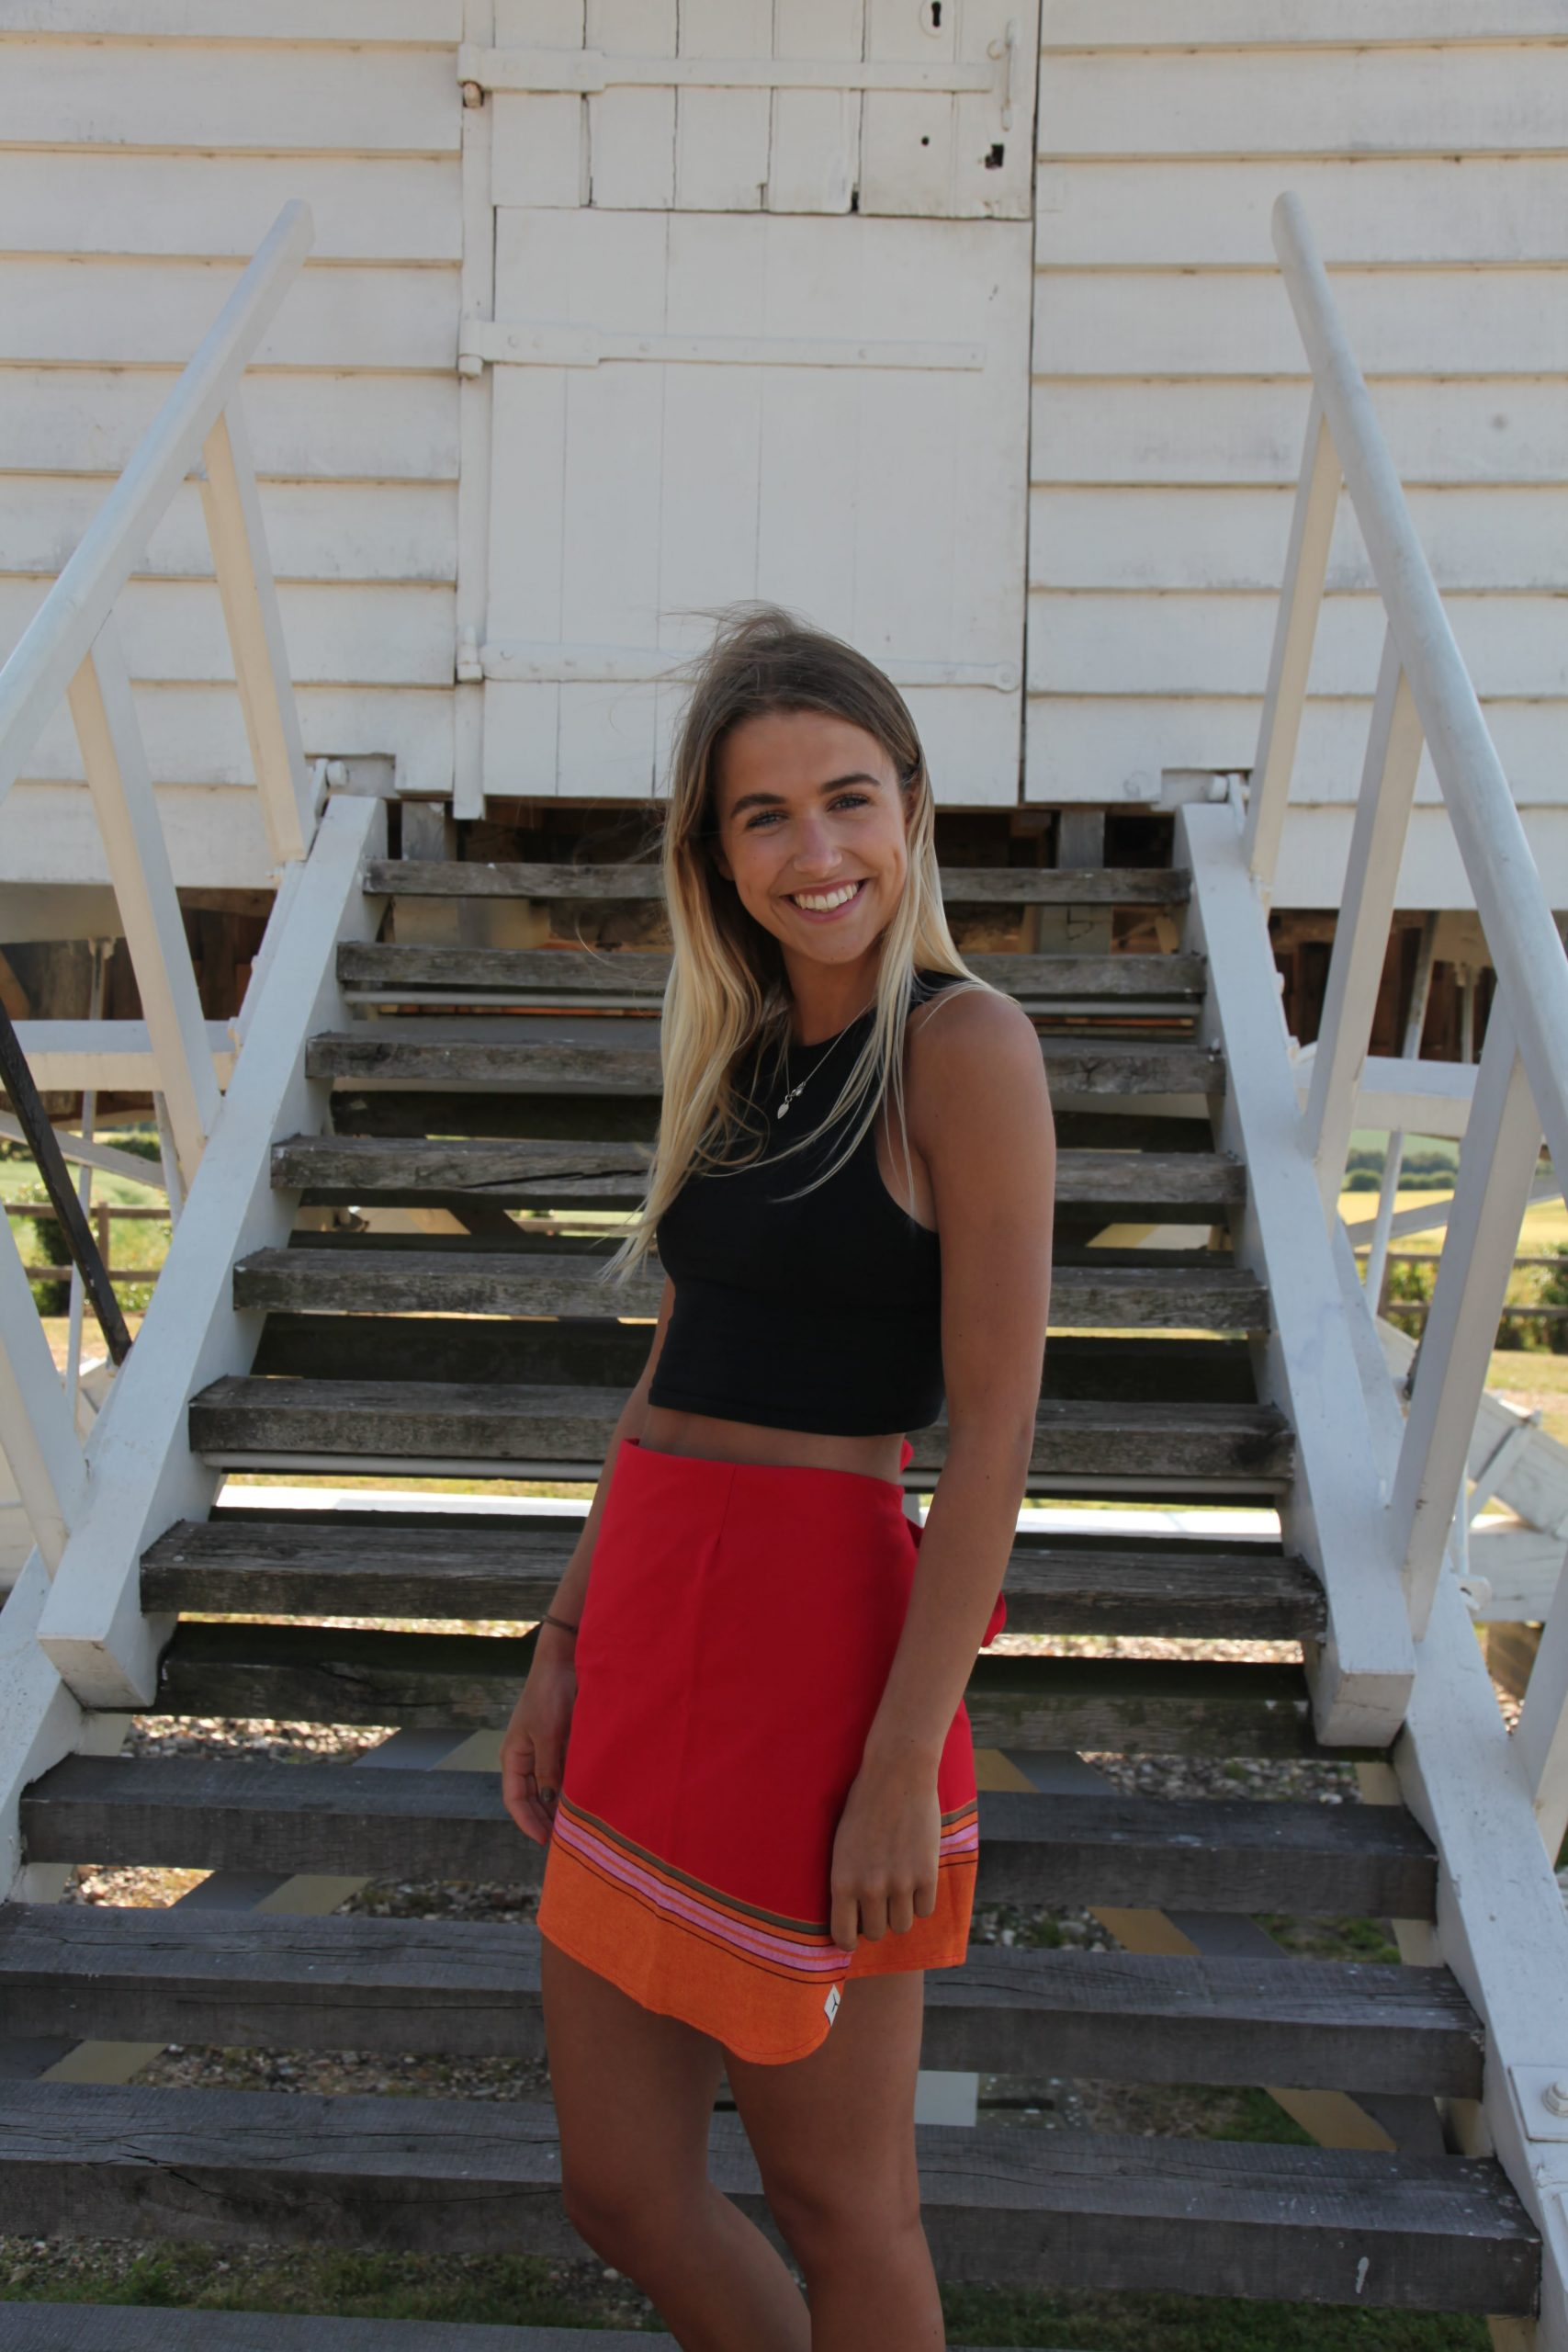 Smiling girl standing on outdoor wooden stairs wearing a black top and a colorful red and orange kikoy skirt